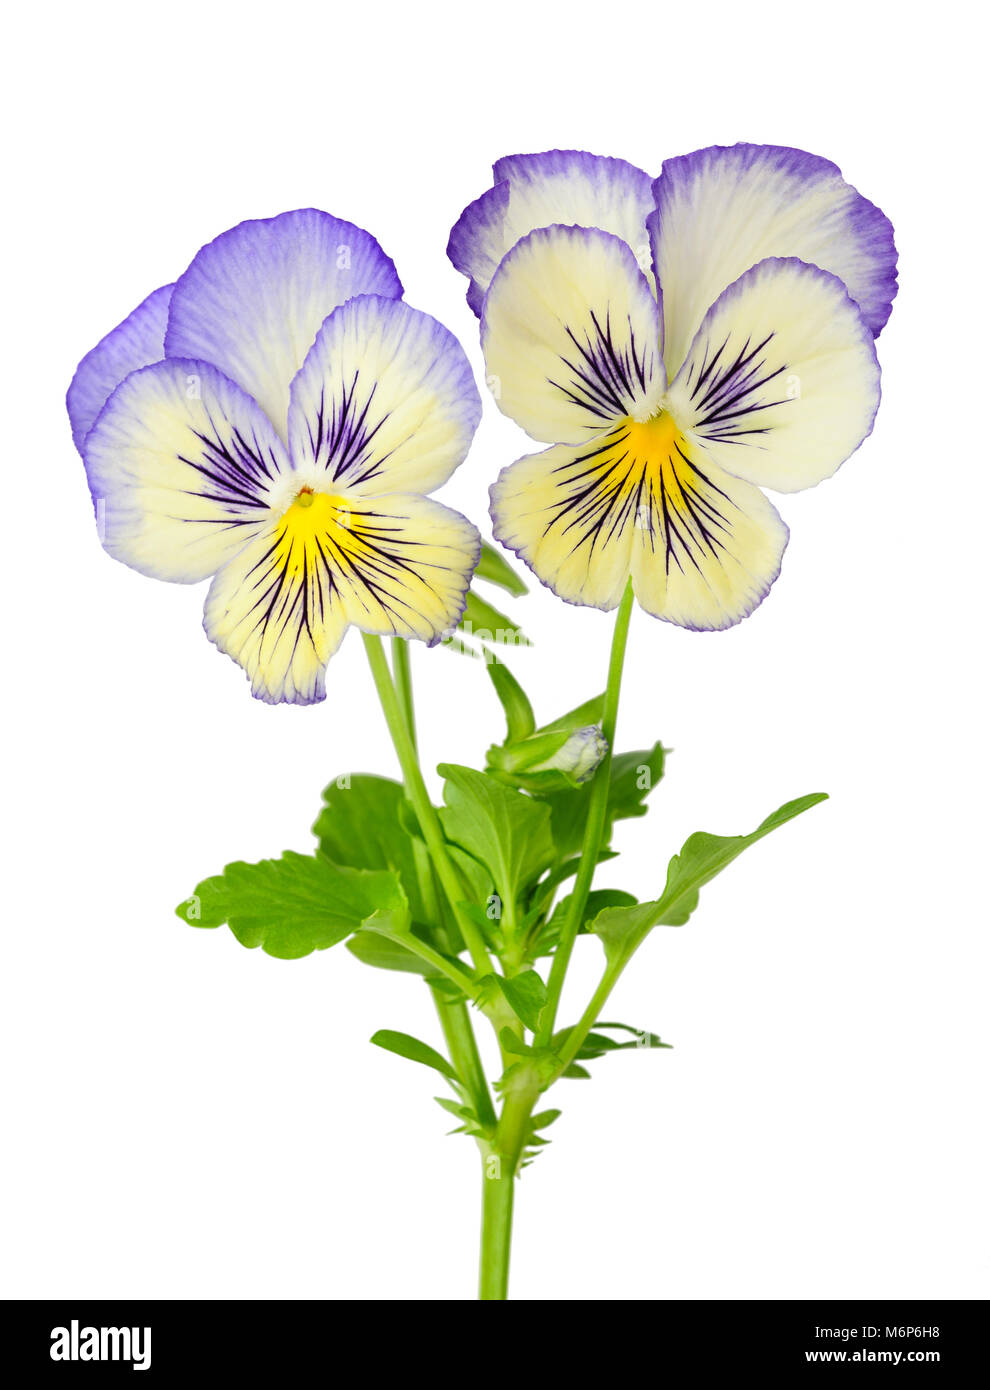 Pansies isolated on white background - Stock Image